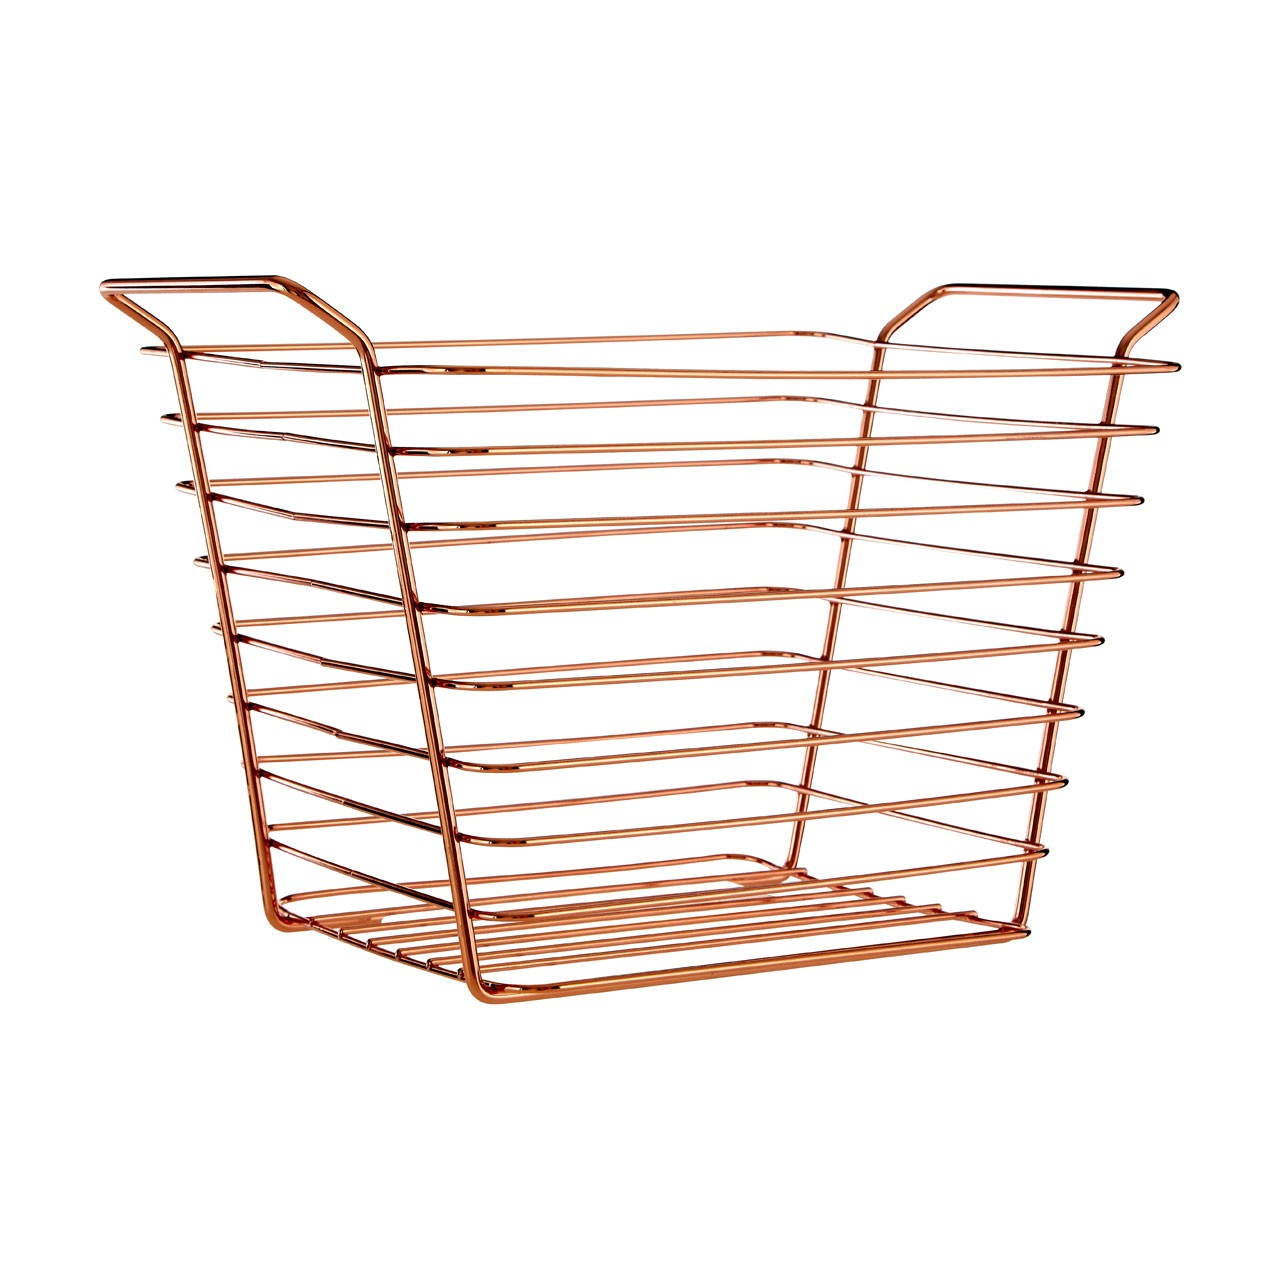 Prime Furnishing Shine Wire Basket - Gold